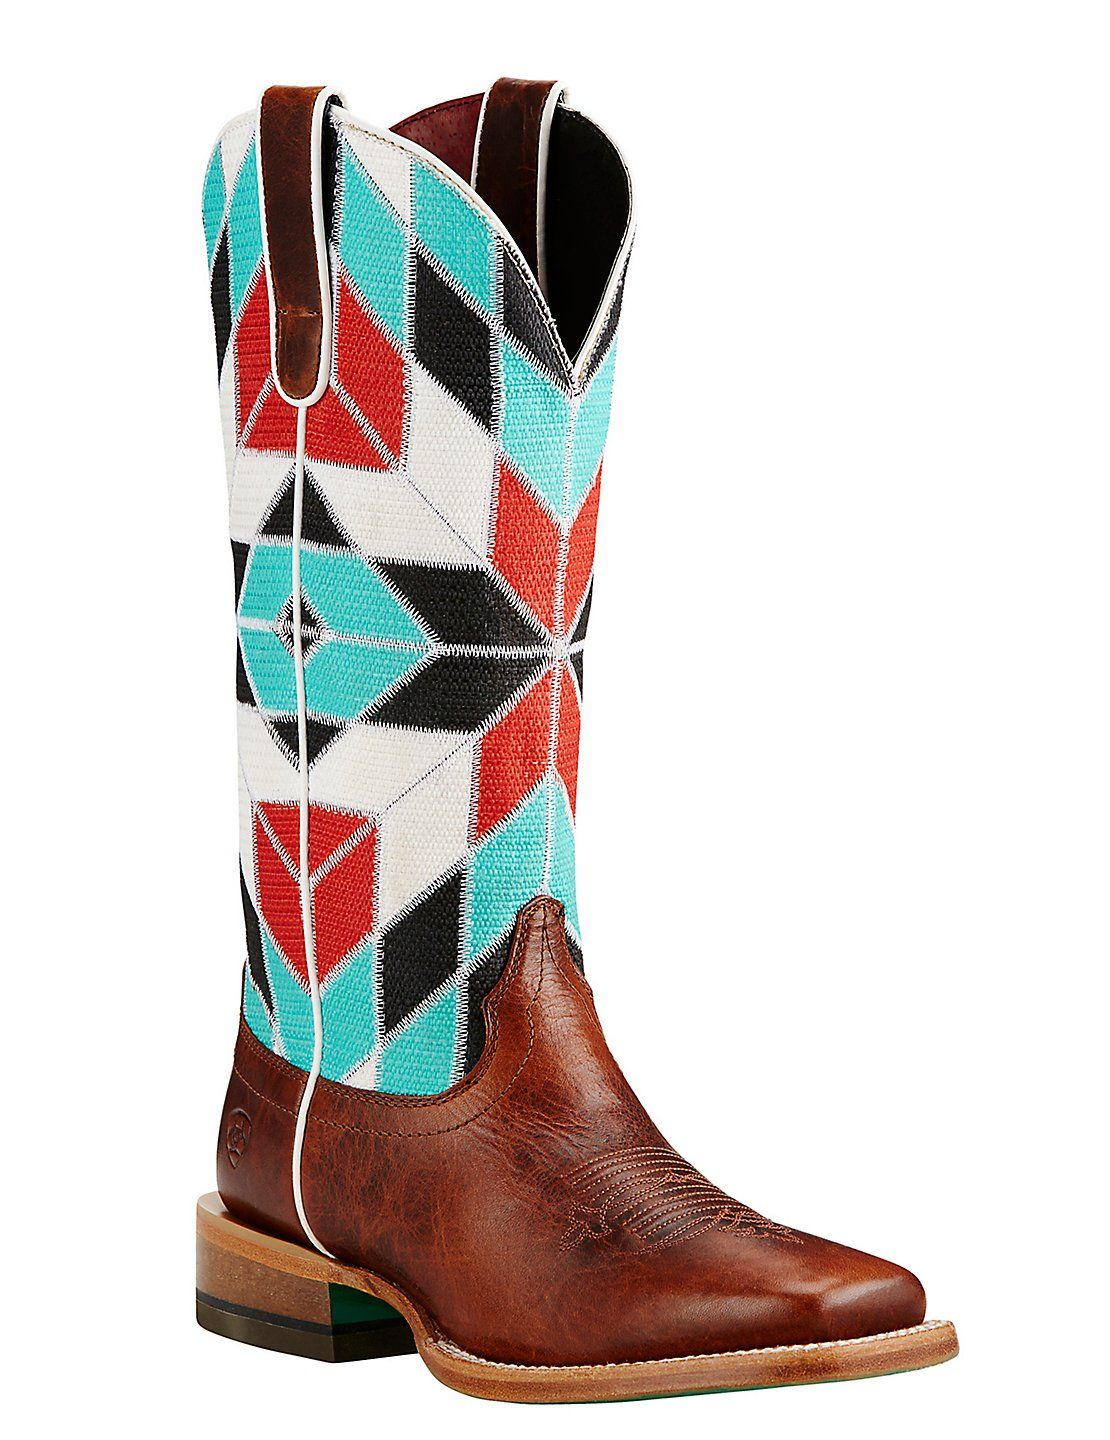 Ariat Women's Brown with Turquoise, Red, White, and Black Multi ...